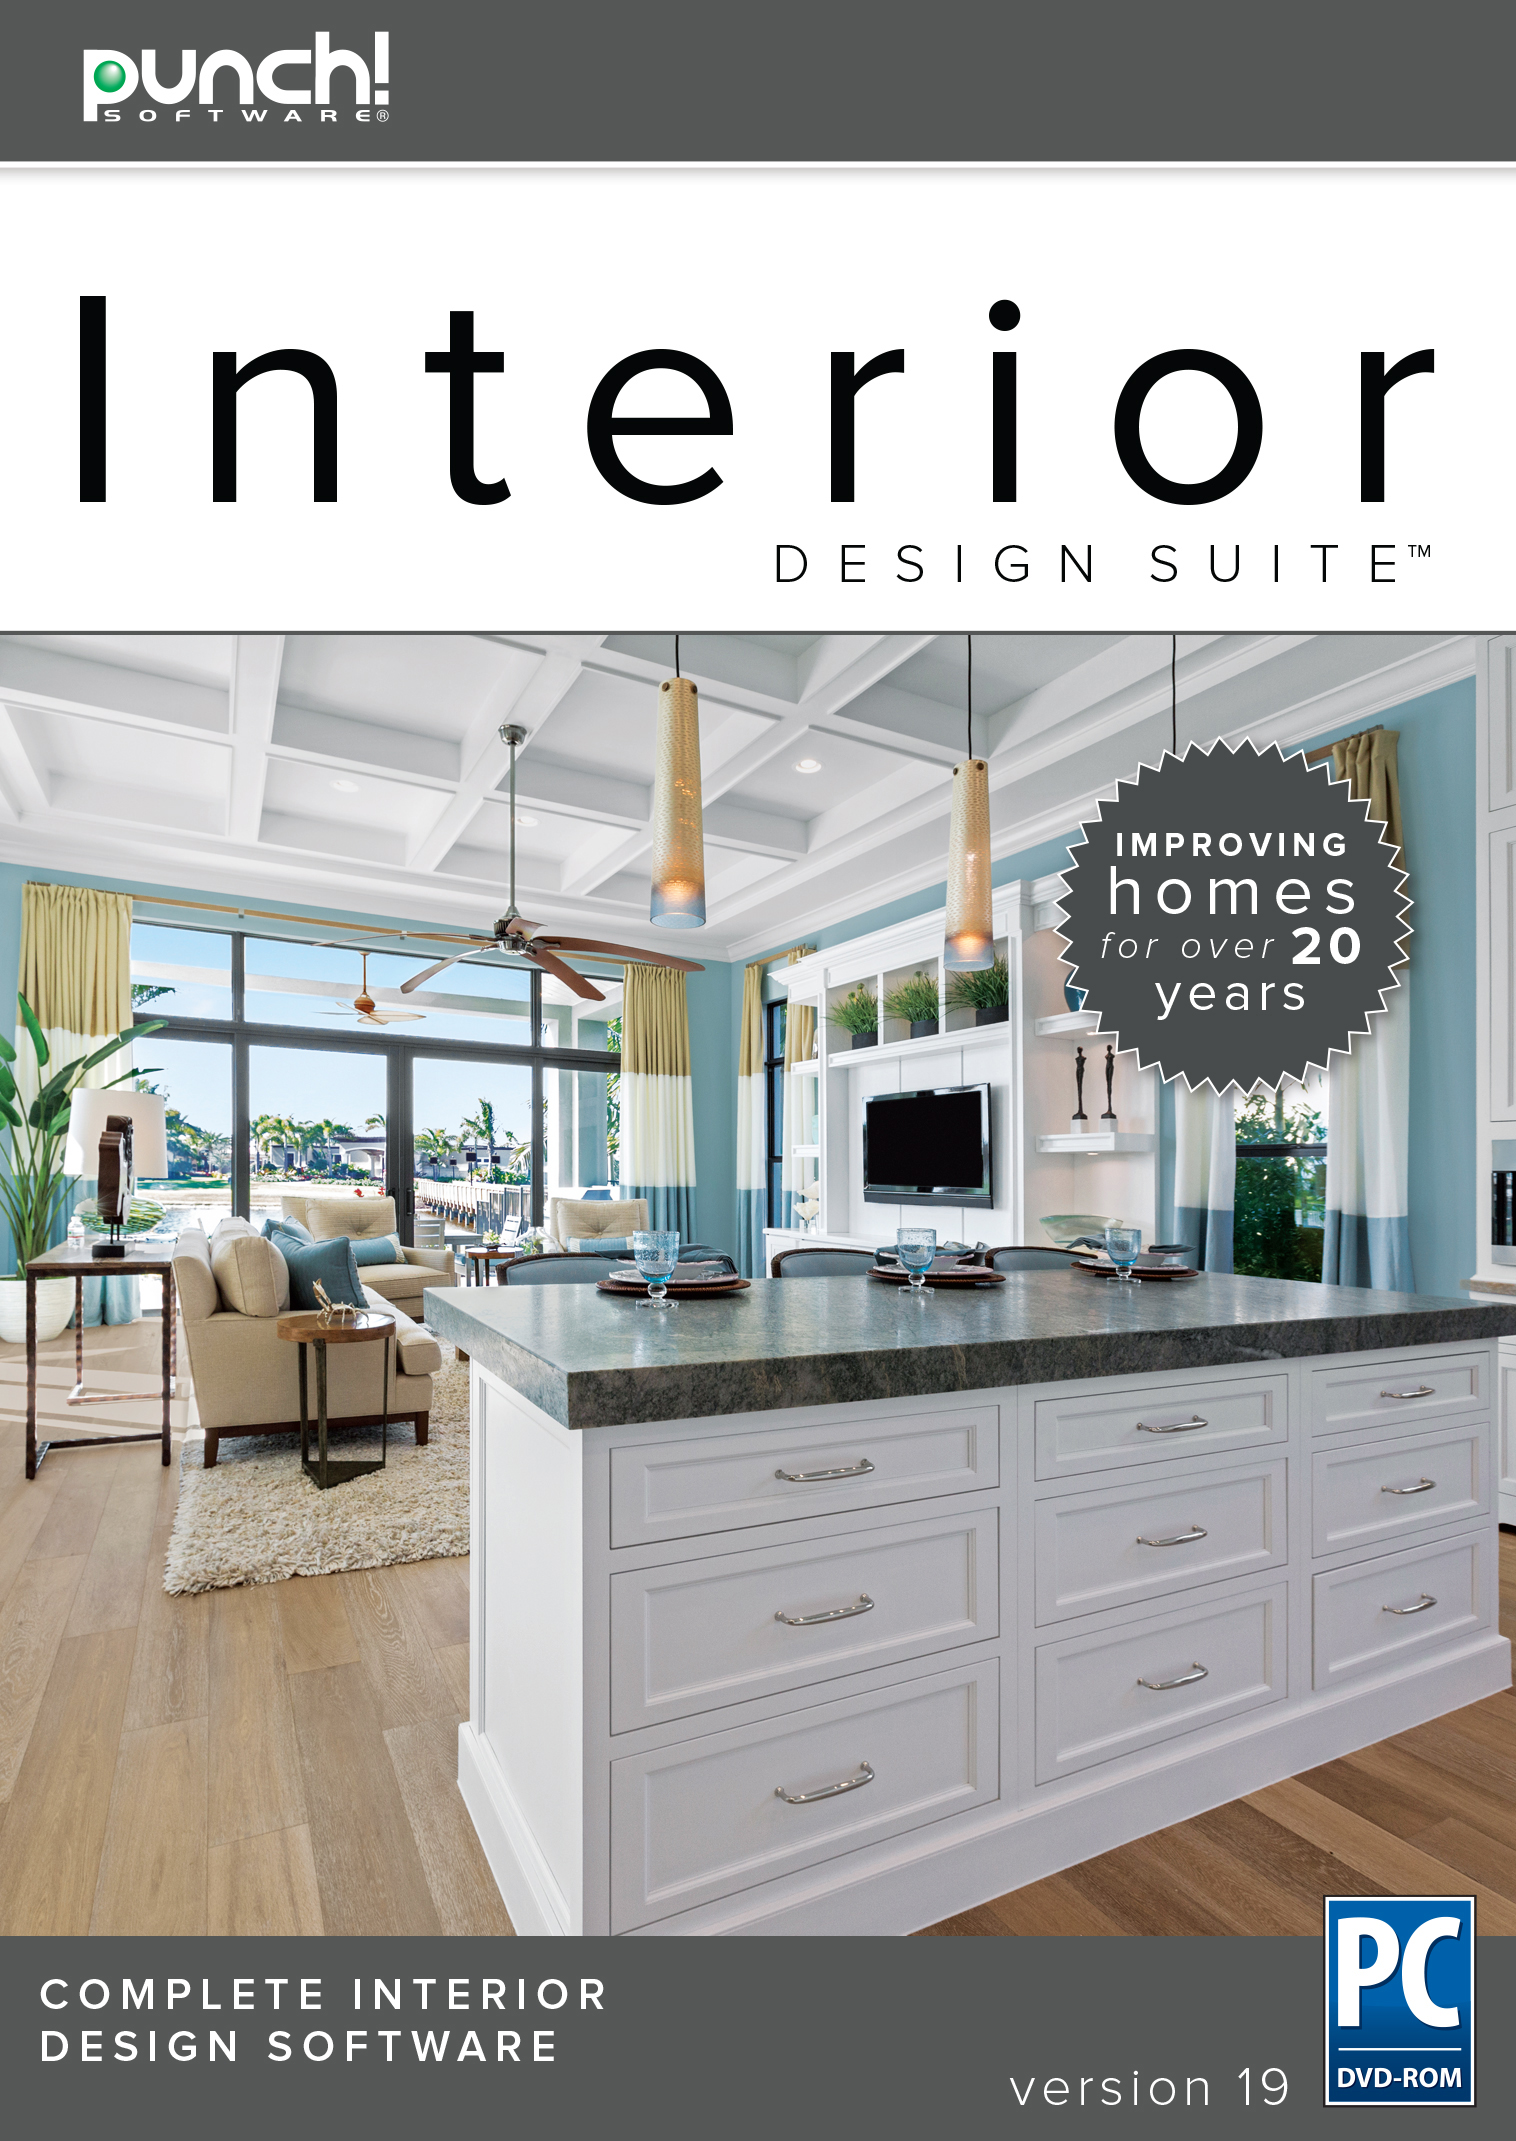 Very Cheap Price On The Home Interior Design Software